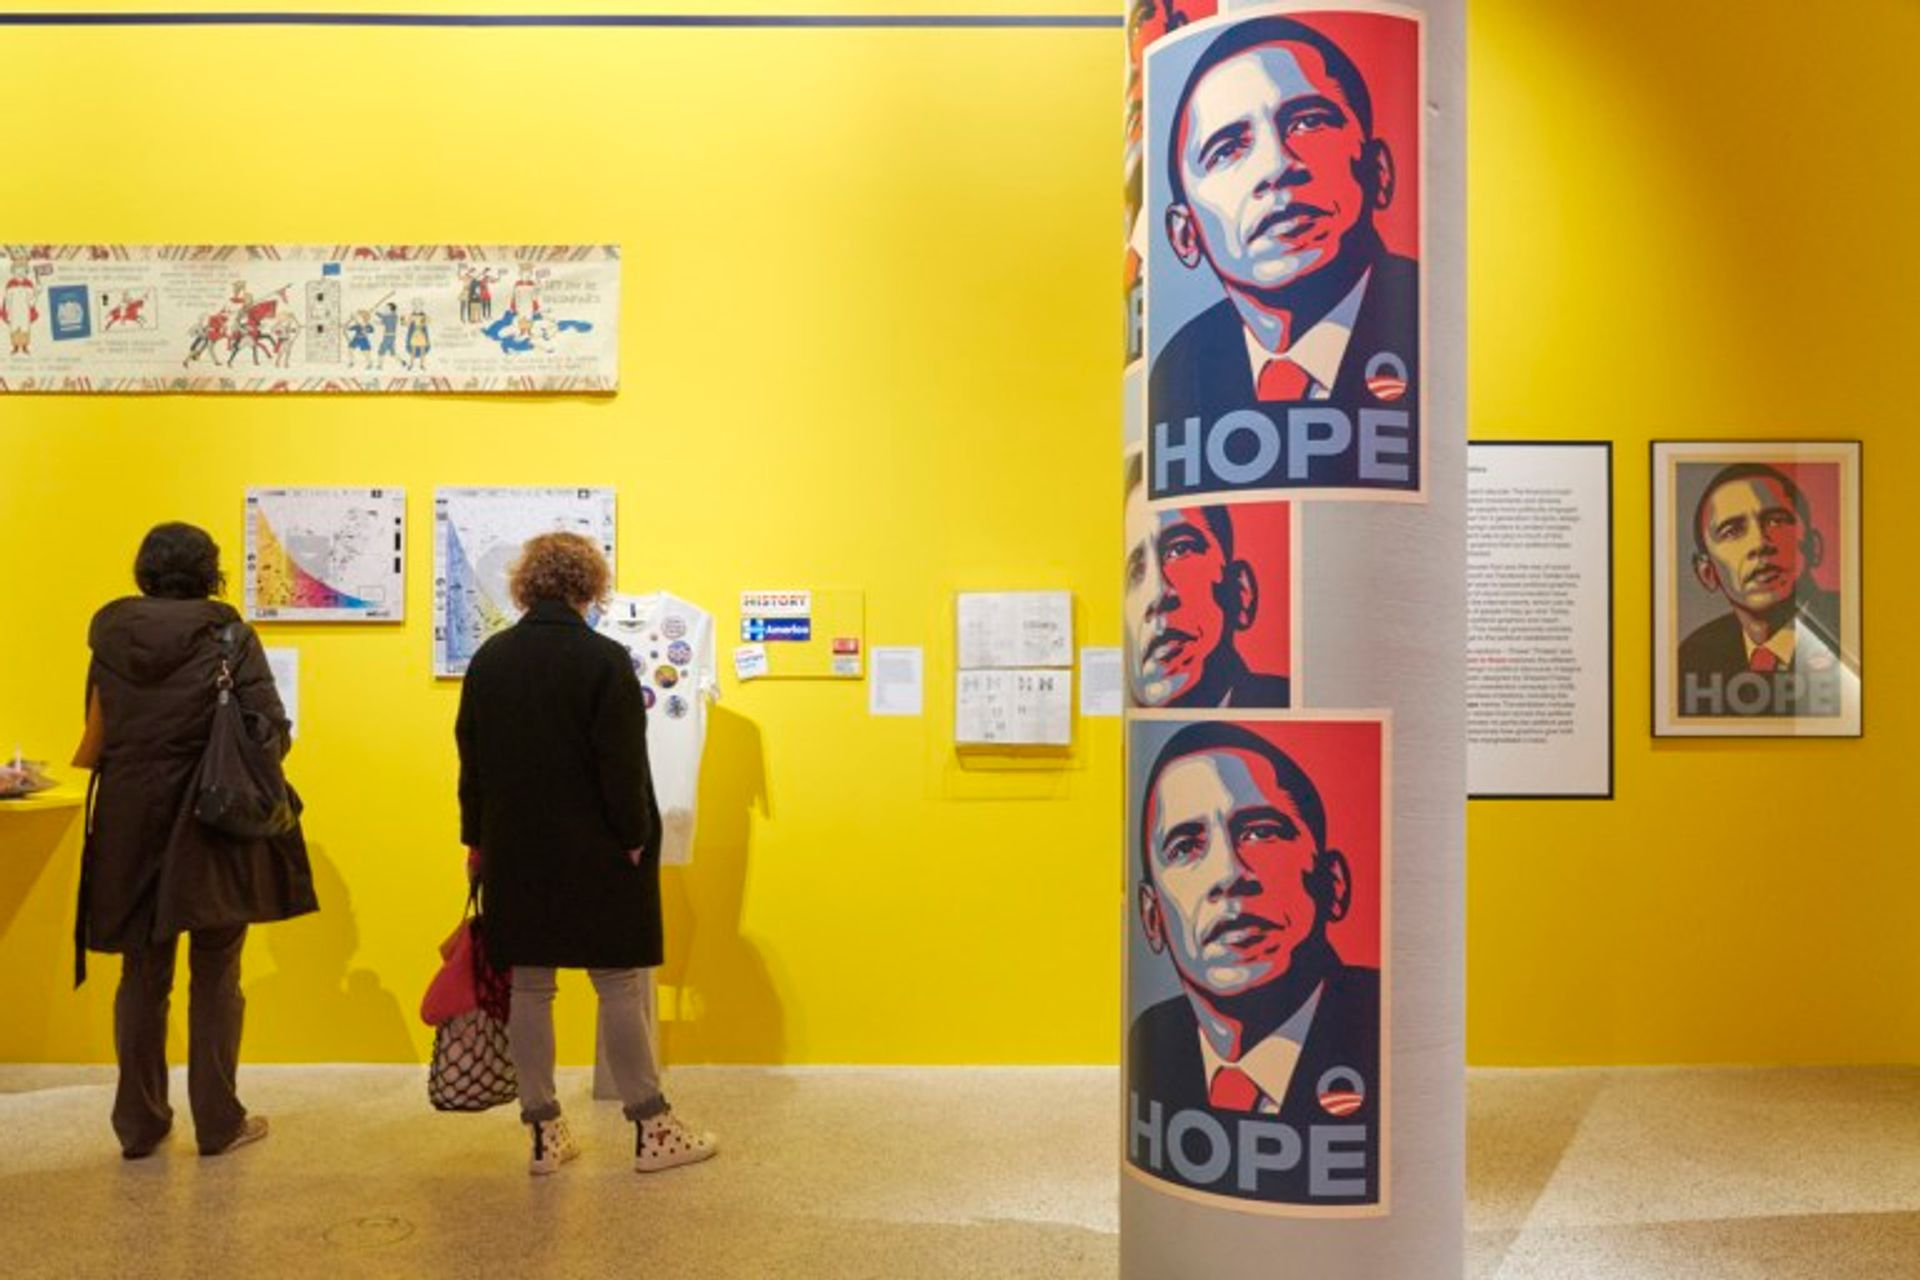 """Shepard Fairey is calling for his """"Hope"""" poster of Barack Obama to be removed from the Design Museum Photo courtesy of the Design Museum London"""